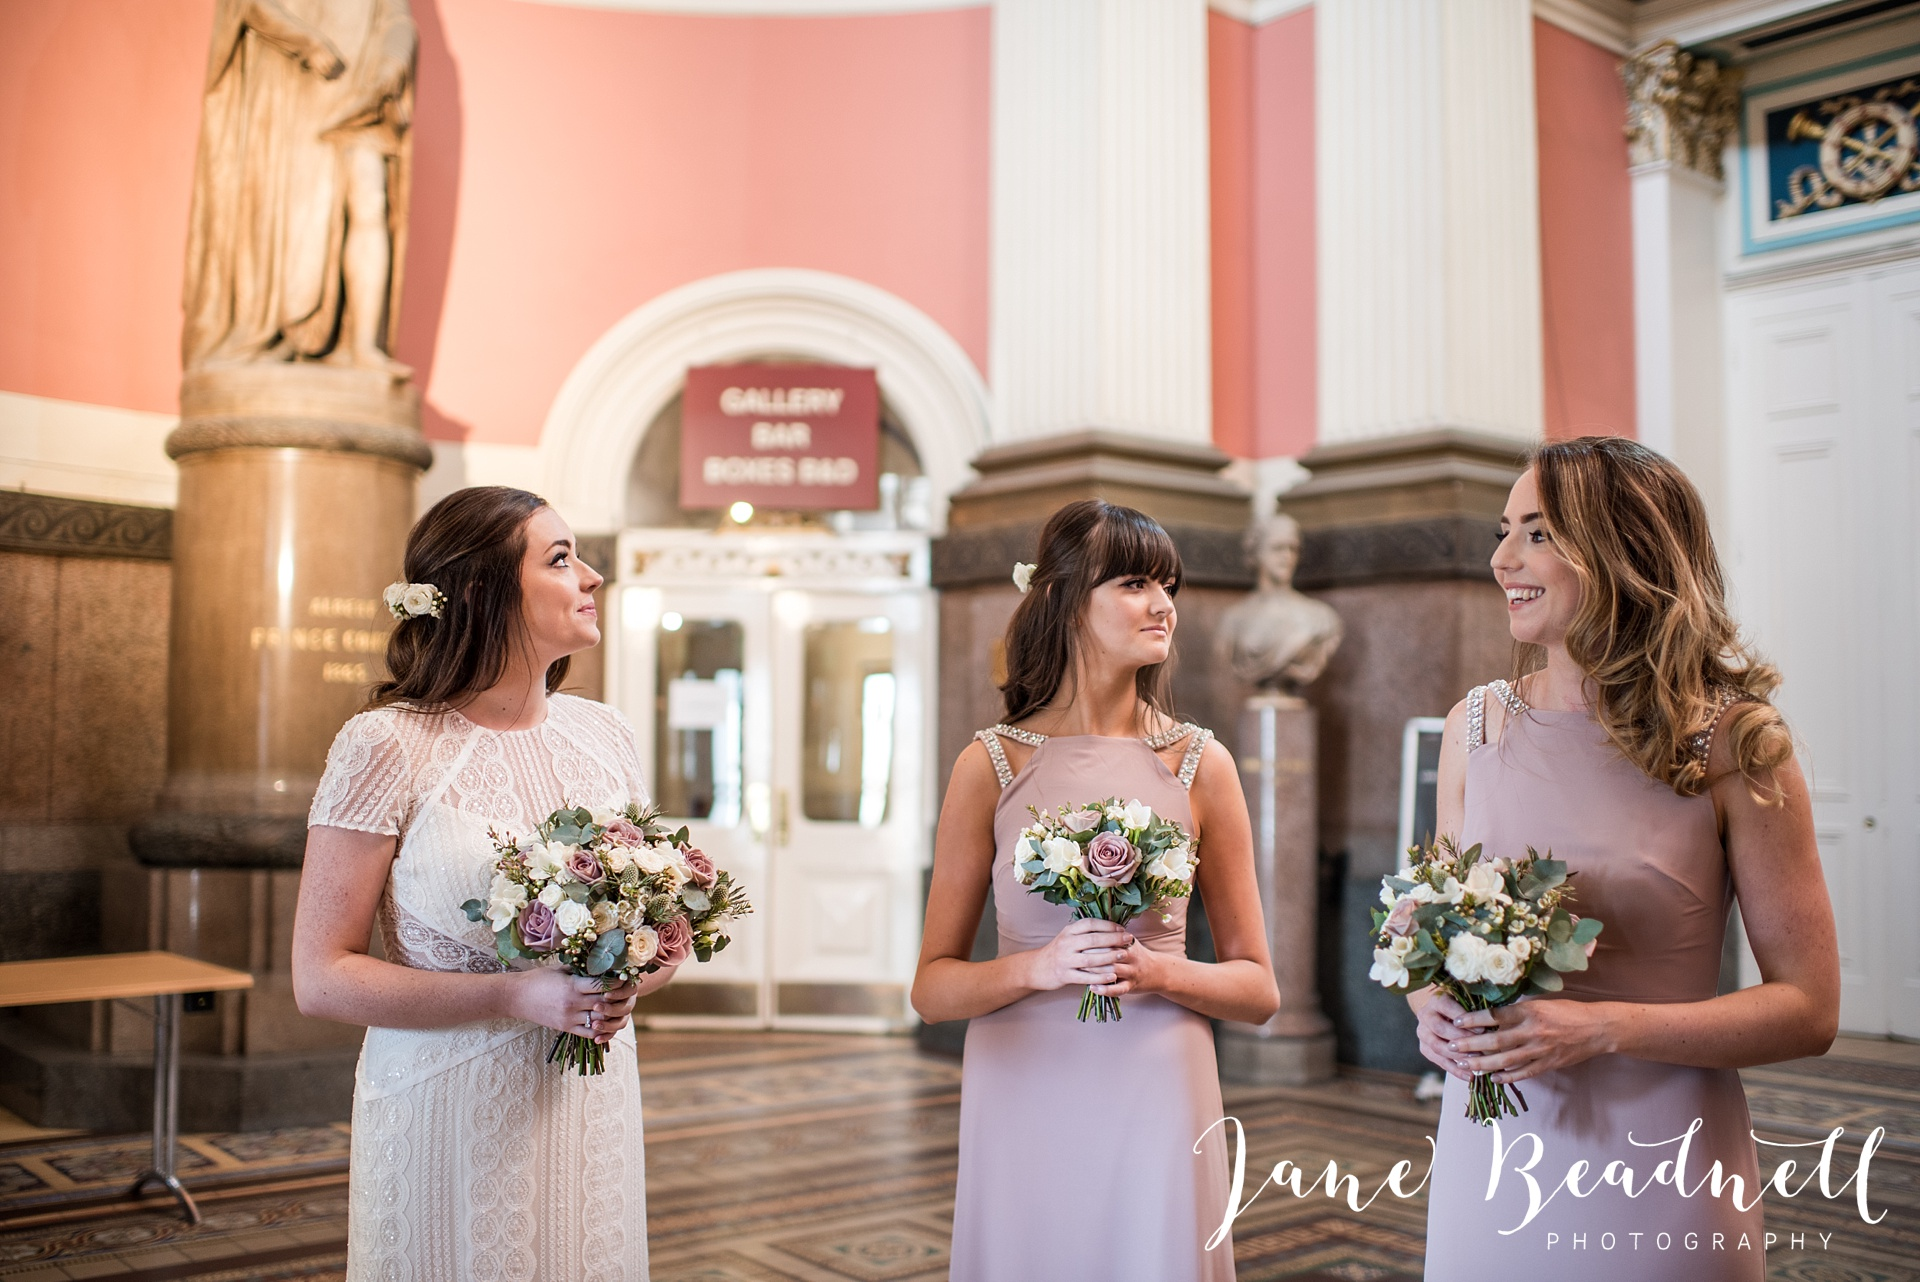 Wedding photography Cross Keys Leeds Wedding Jane Beadnell Photography_0022